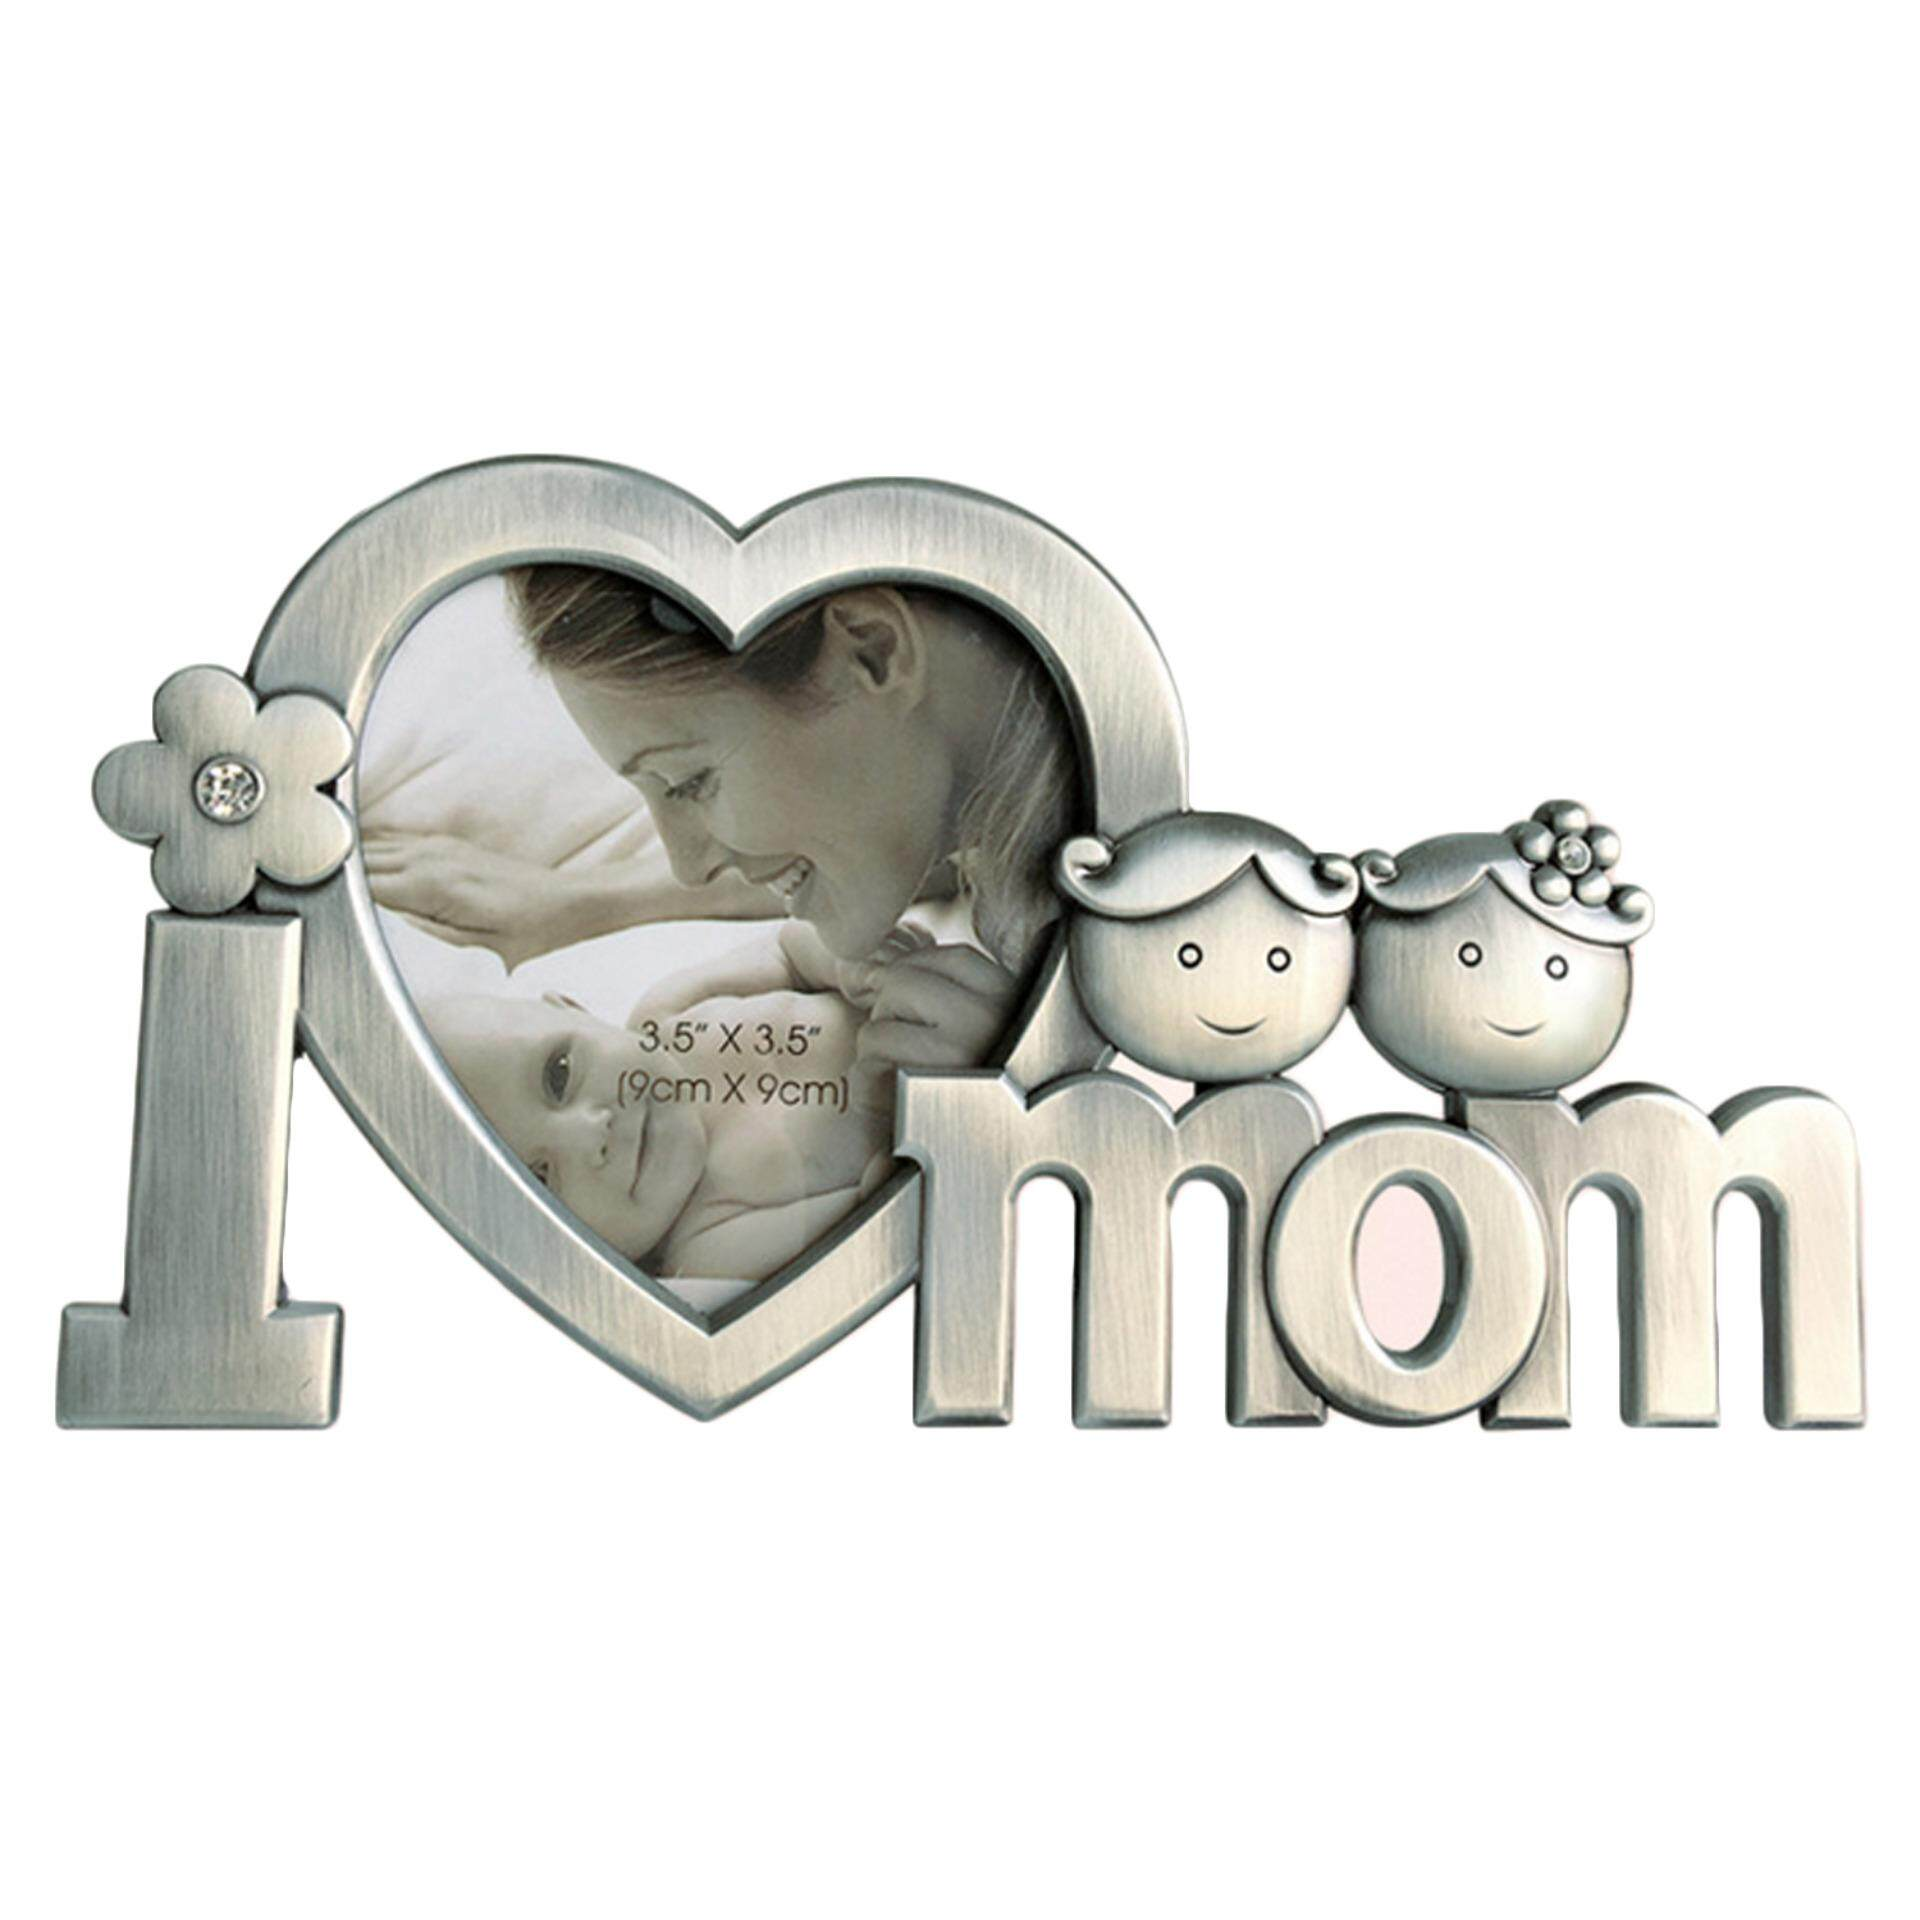 I Love Mom Metal Picture Photo Frame Heart Shaped Photo Frame for Mothers Day Birthday Gifts Silver - intl